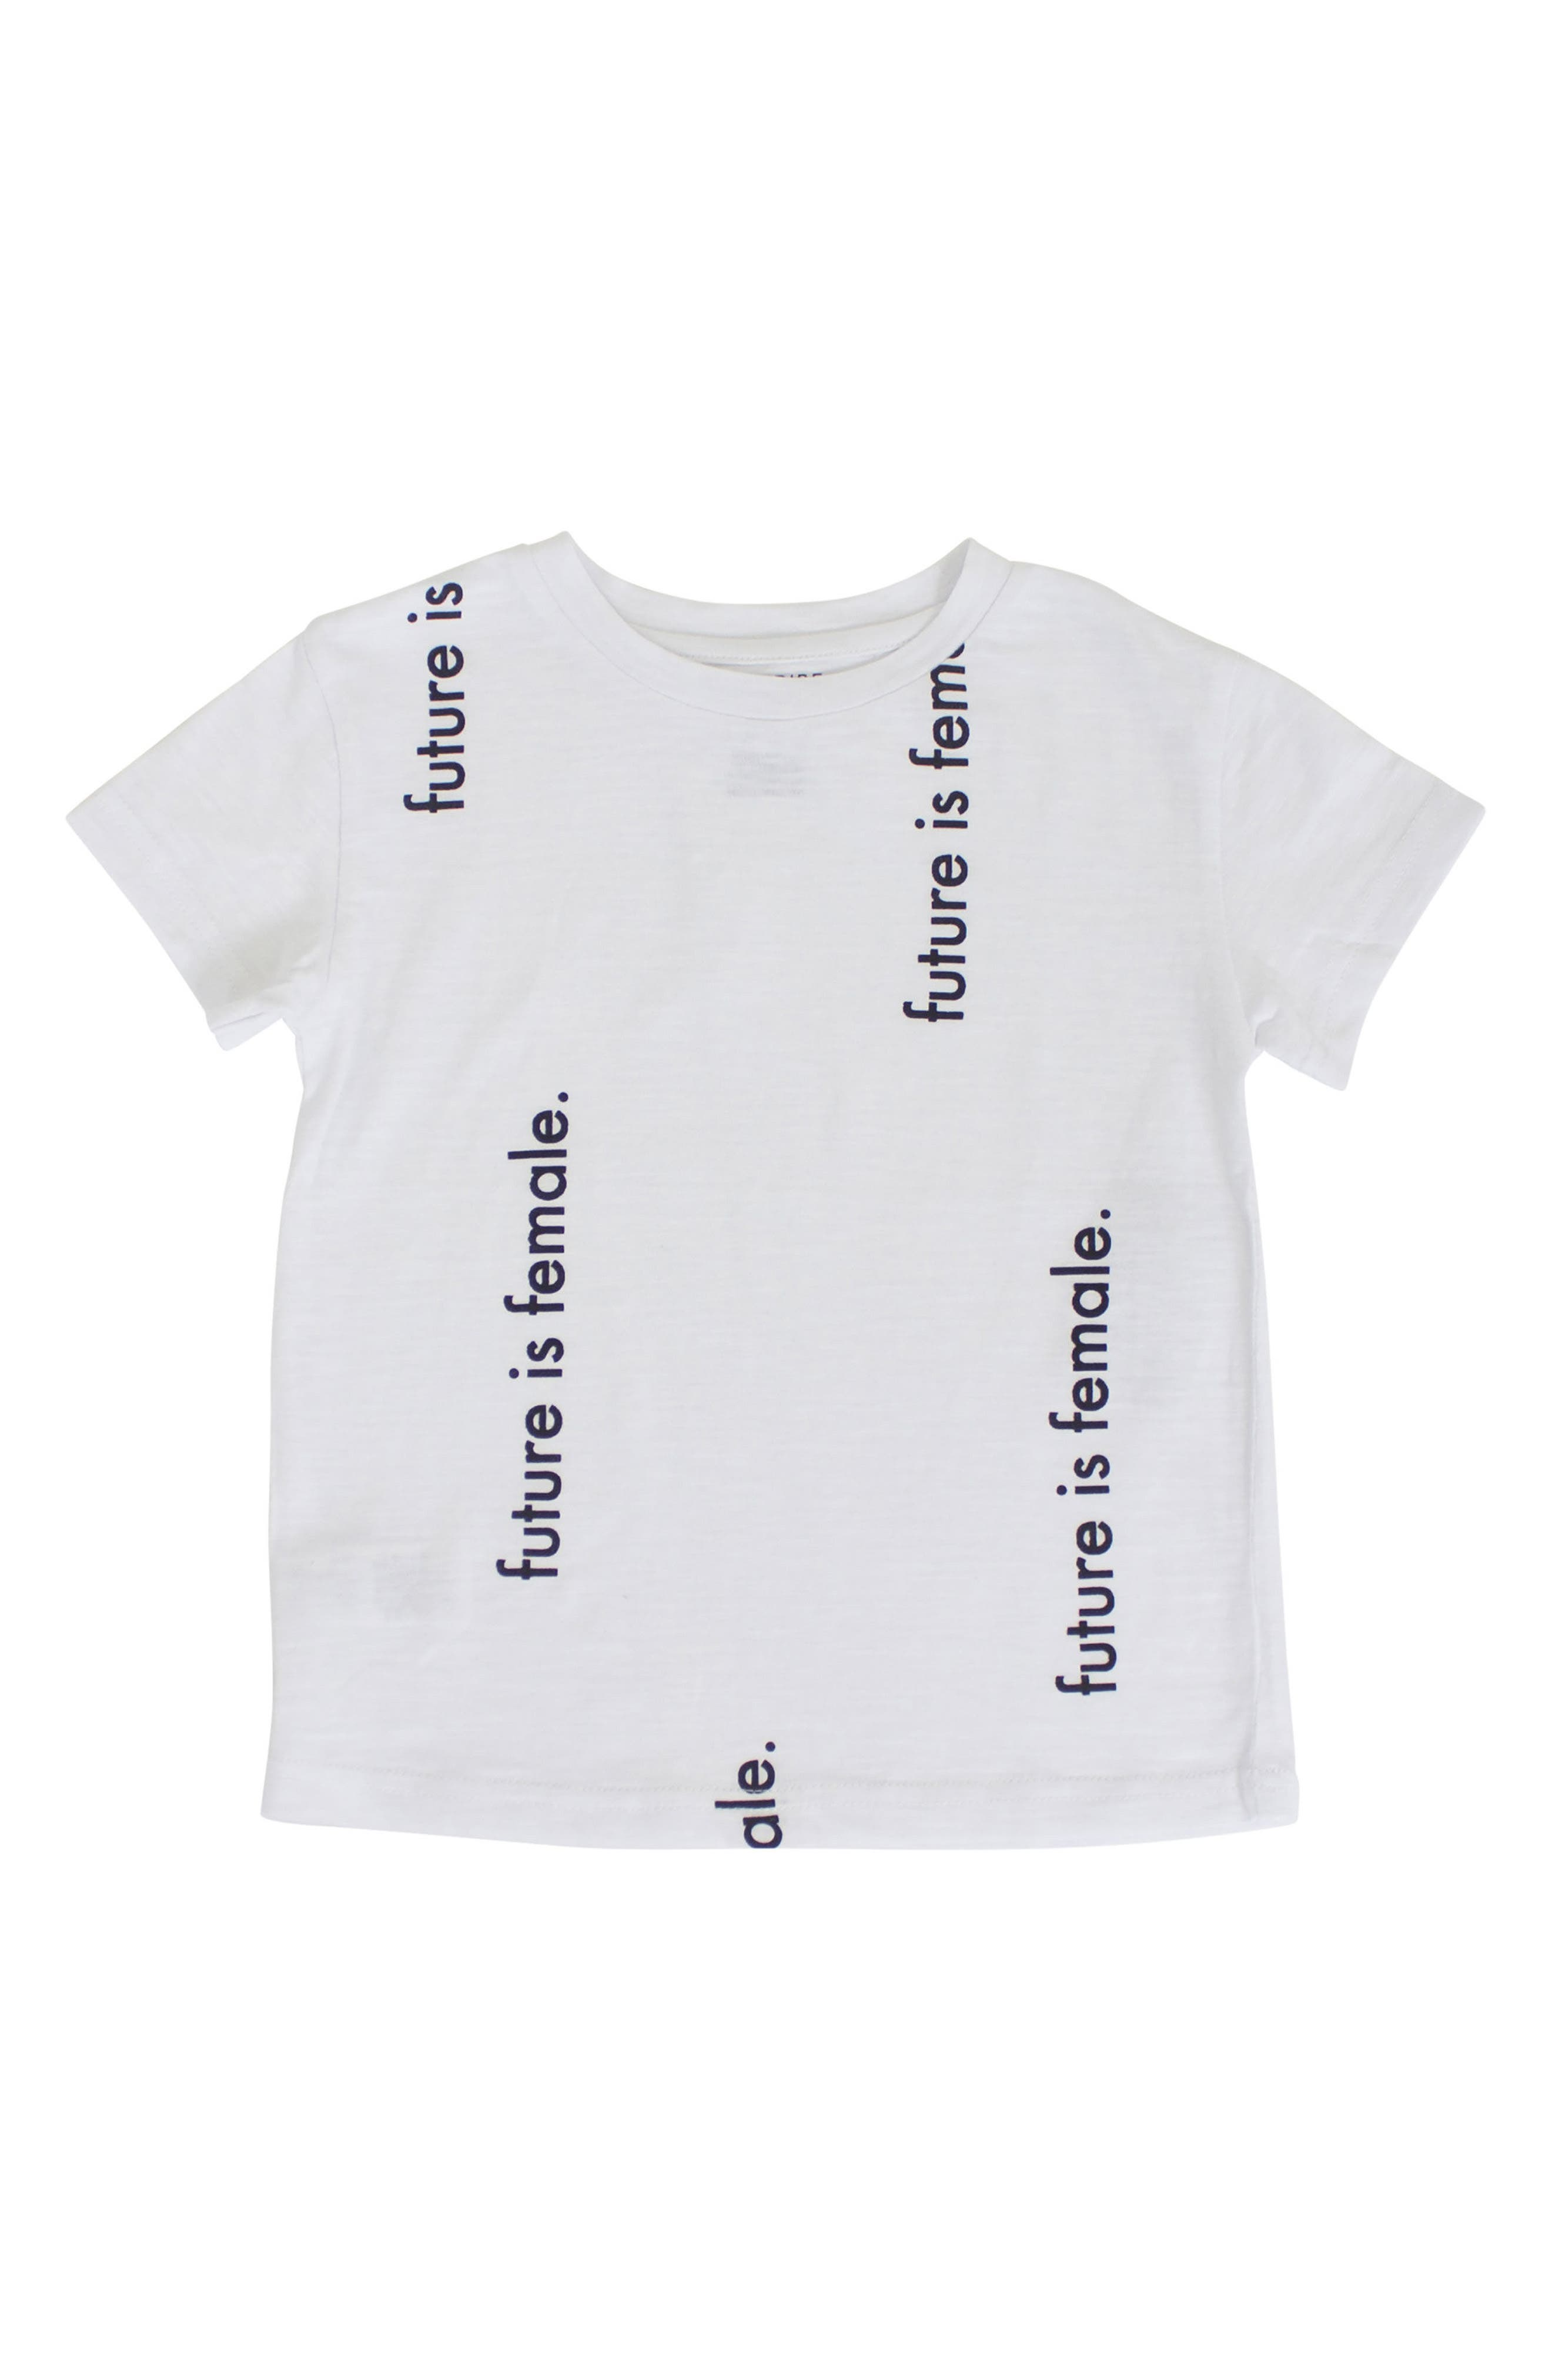 Future is Female Graphic Tee,                             Main thumbnail 1, color,                             White